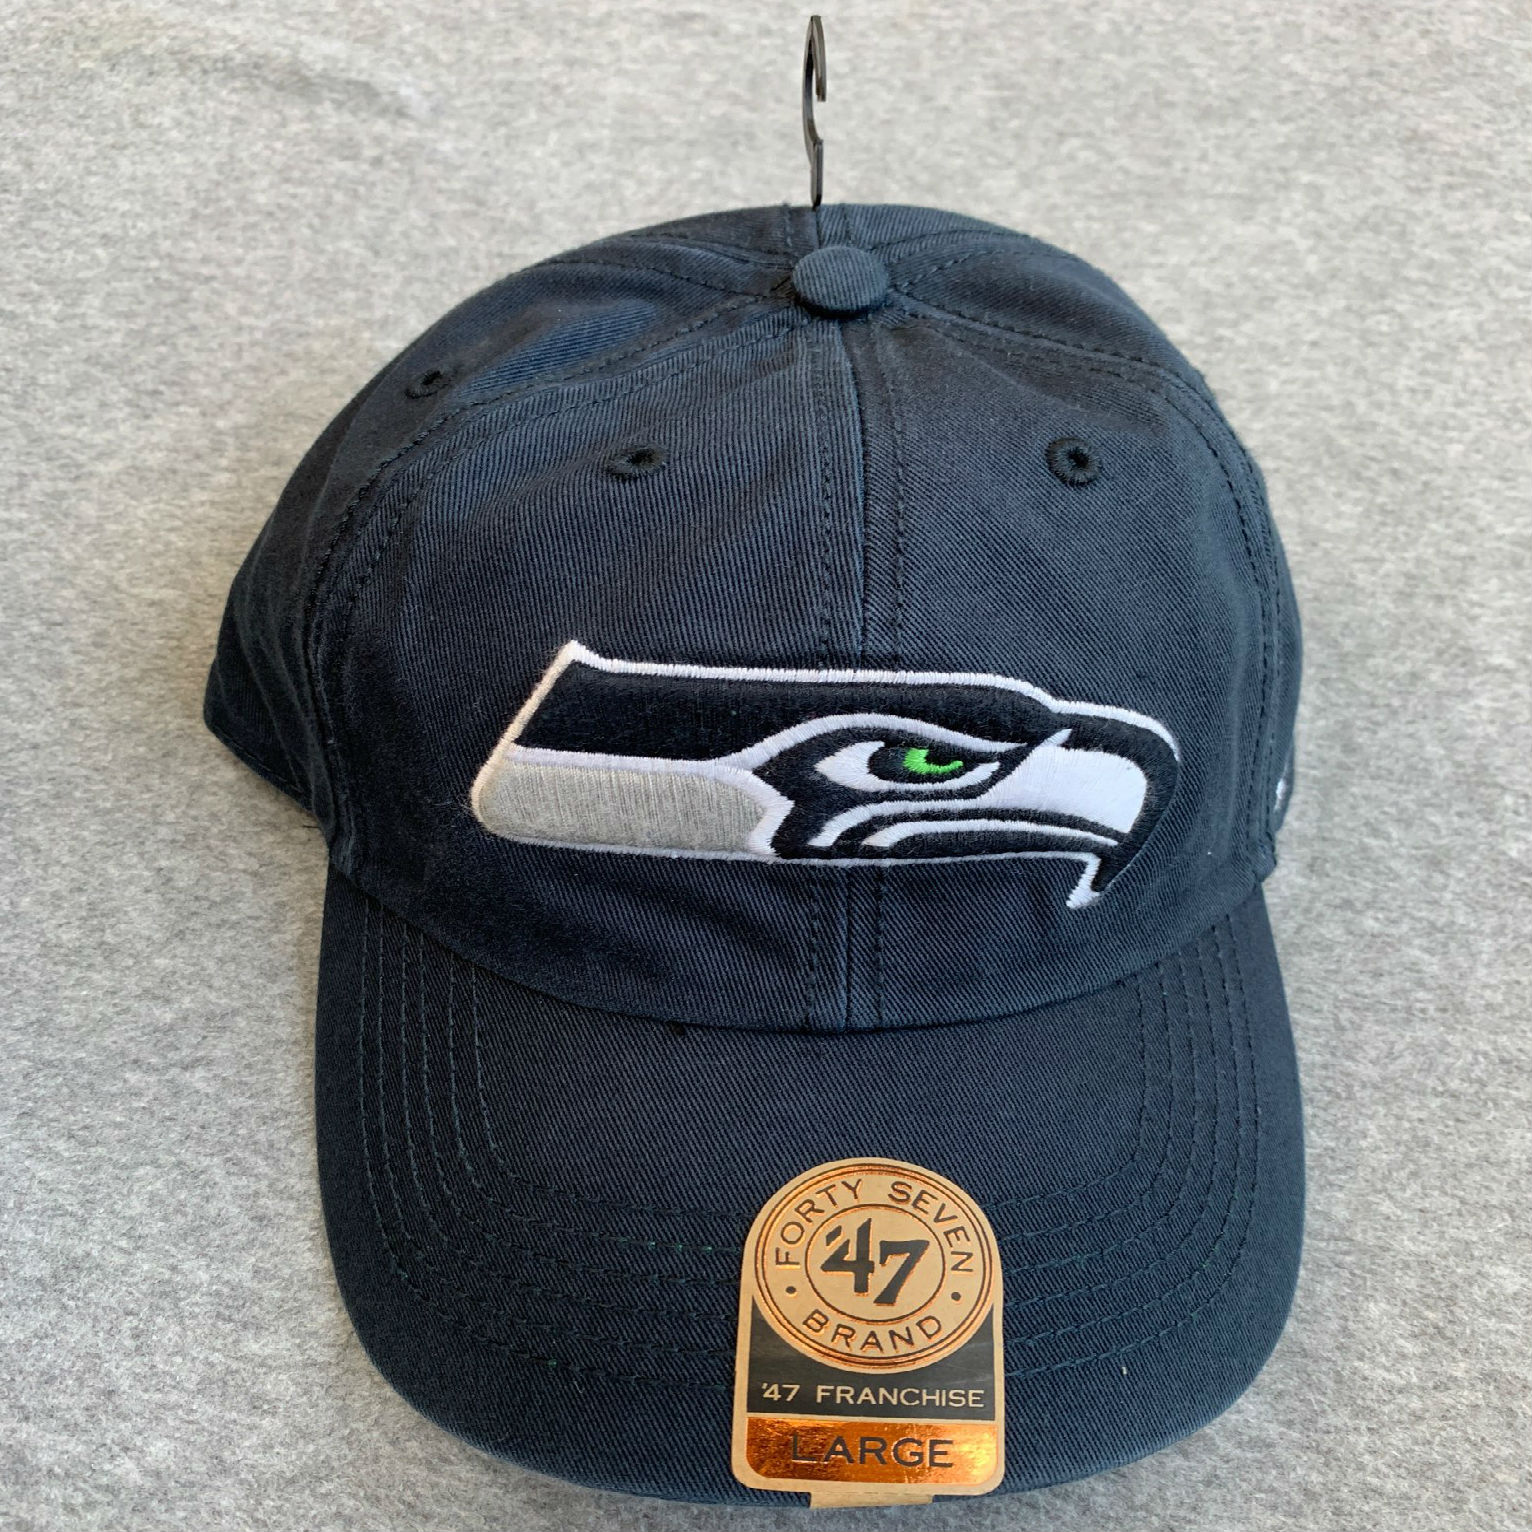 Seahawks Fitted hat size Large